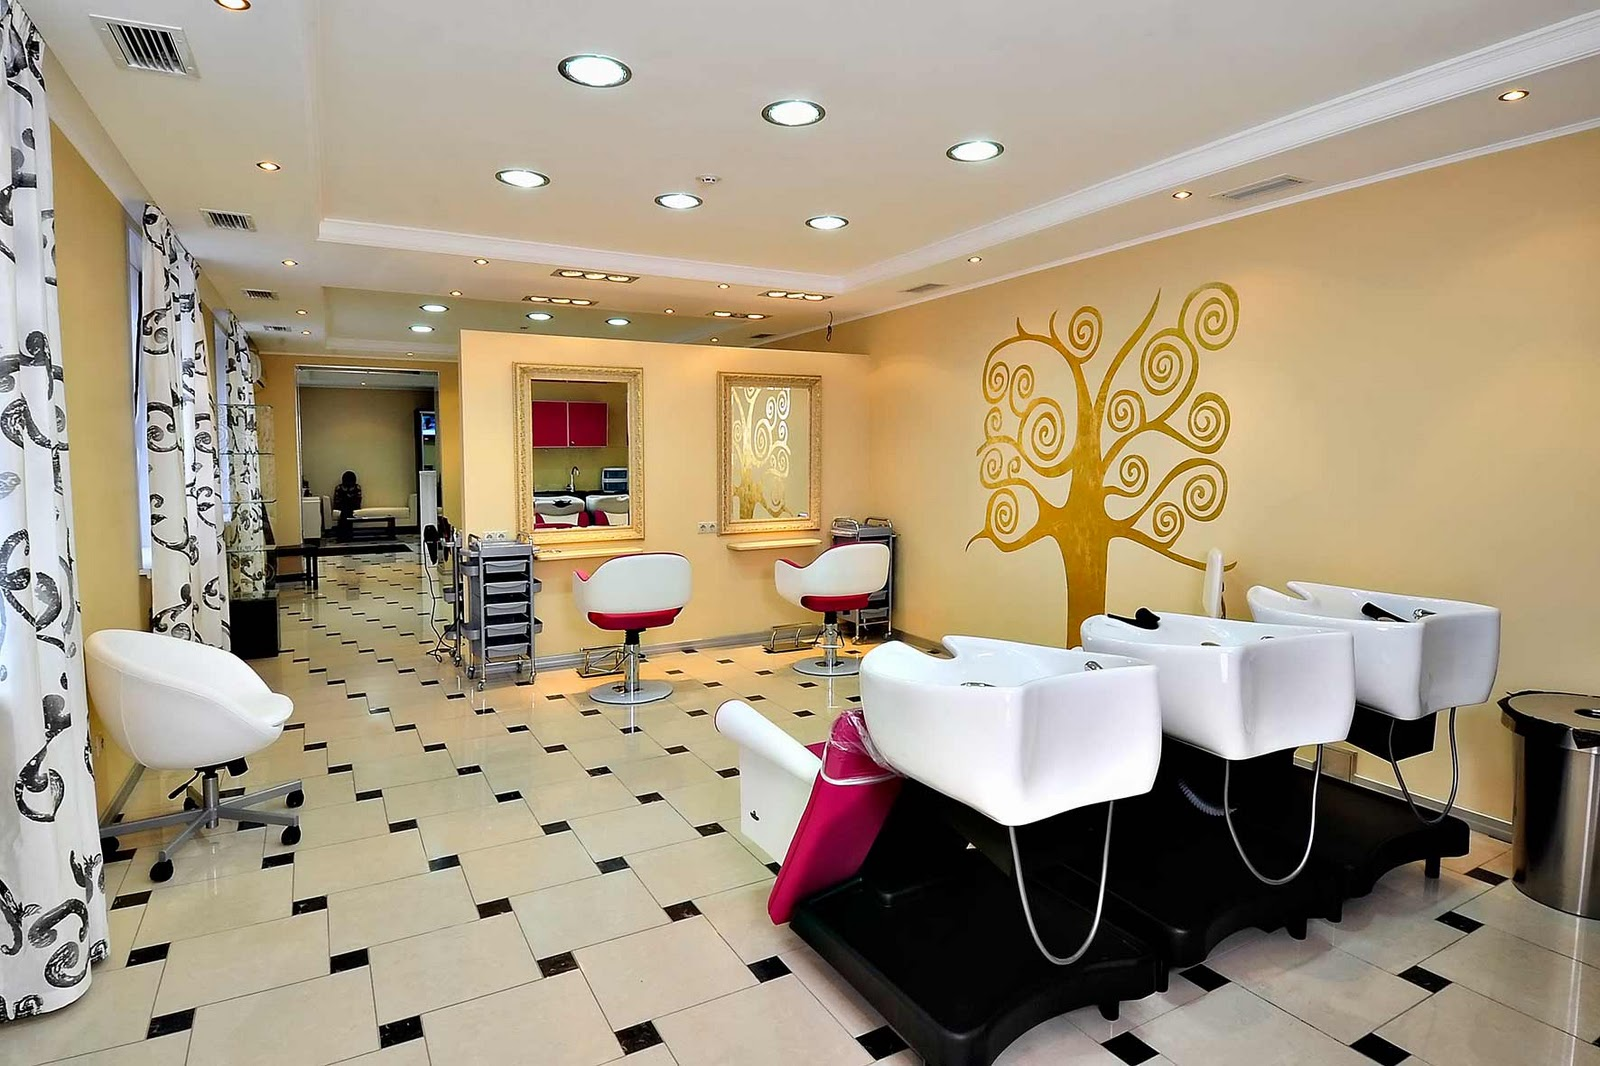 Beauty salon kataleya in the city архангельск - online entry online entry to the beauty salon, sign up online